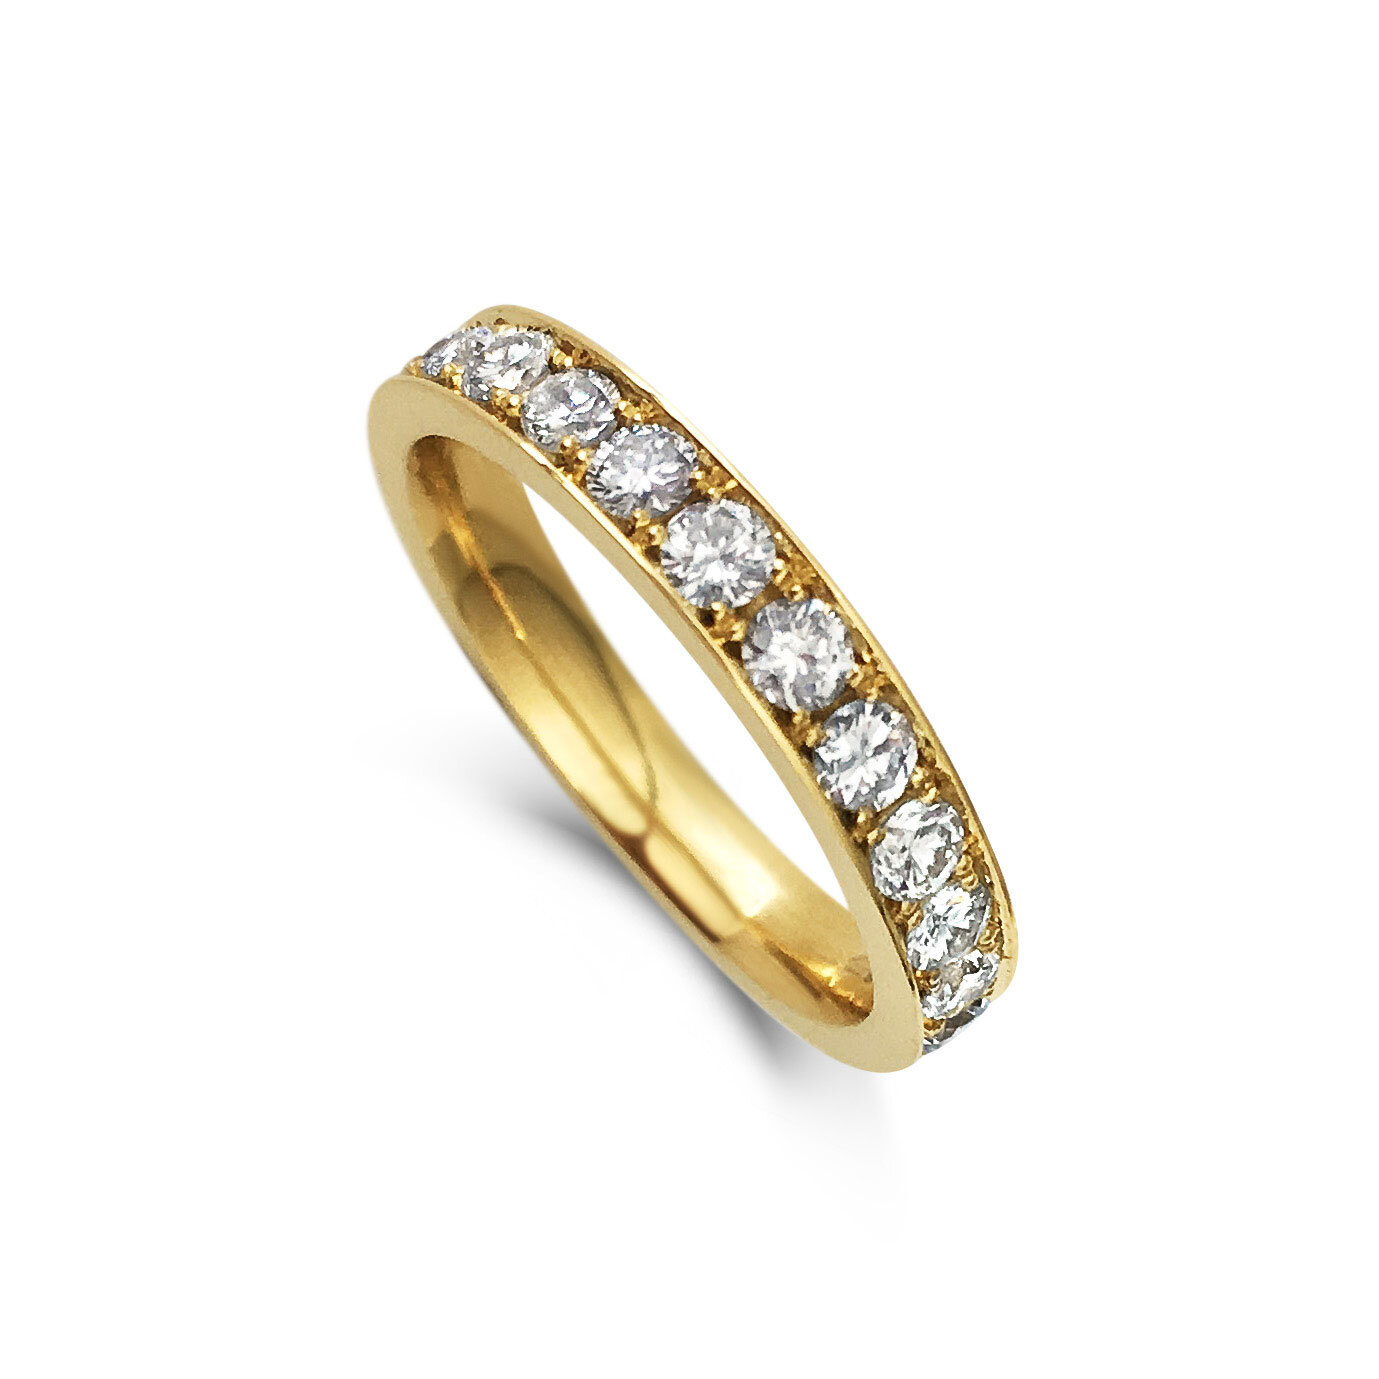 Diamond eternity ring mounted in 18ct yellow gold